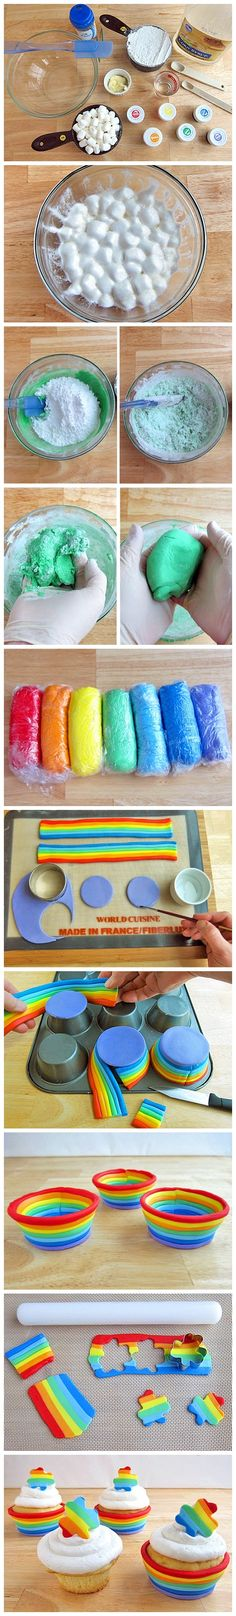 Edible Fondant Rainbow Cupcake Wrappers Recipe and How-To.make fondant! Fondant Cupcakes, Marshmallow Fondant, Cupcake Cakes, Fondant Rainbow, Rainbow Cupcakes, Cupcakes Kids, Cake Decorating Tips, Cookie Decorating, Decoration Patisserie